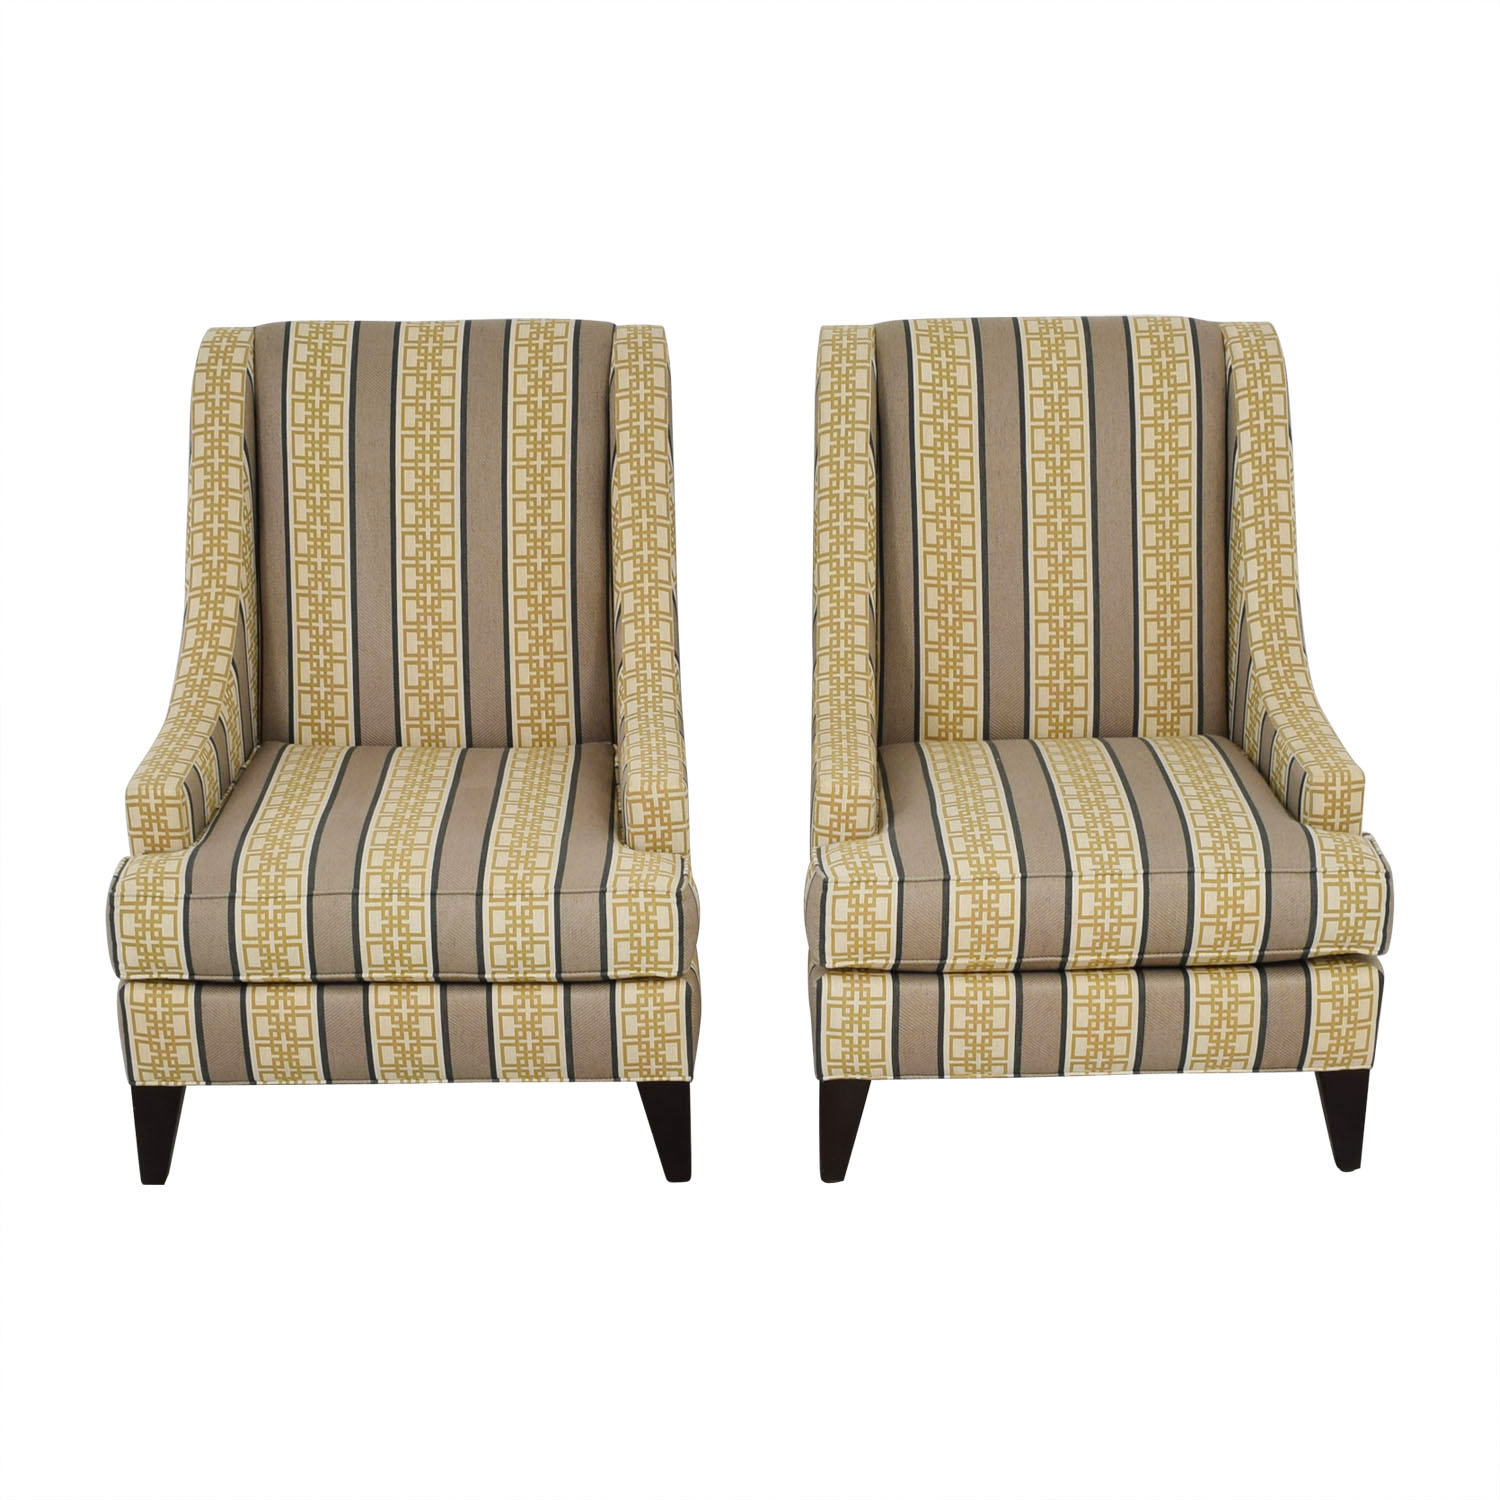 buy Ethan Allen Emerson Multi-Colored Geometric Pattern Accent Chairs Ethan Allen Chairs